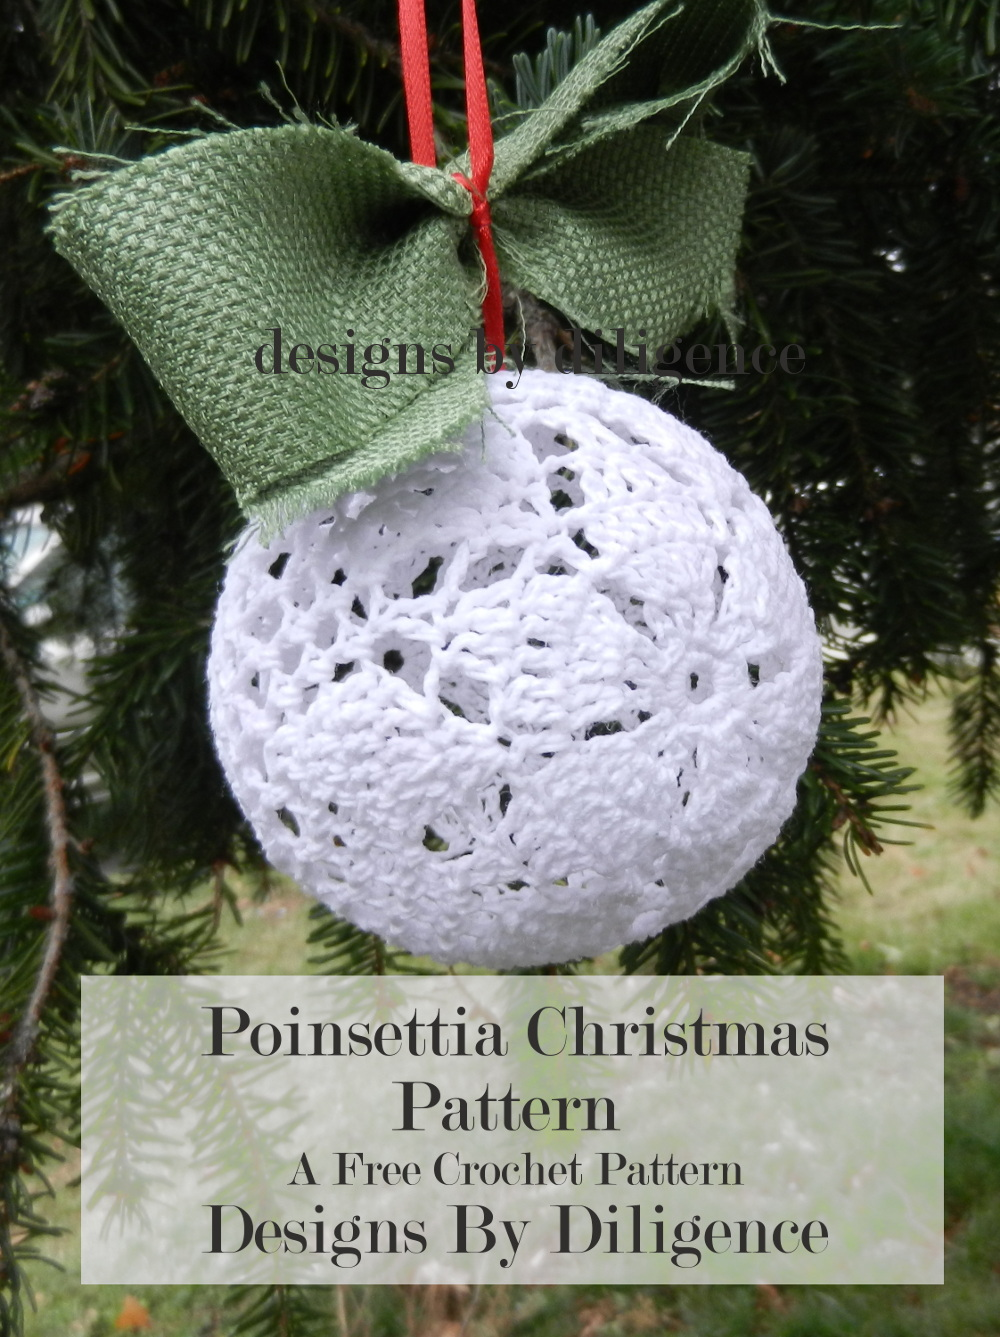 Designs By Diligence Poinsettia Christmas Pattern